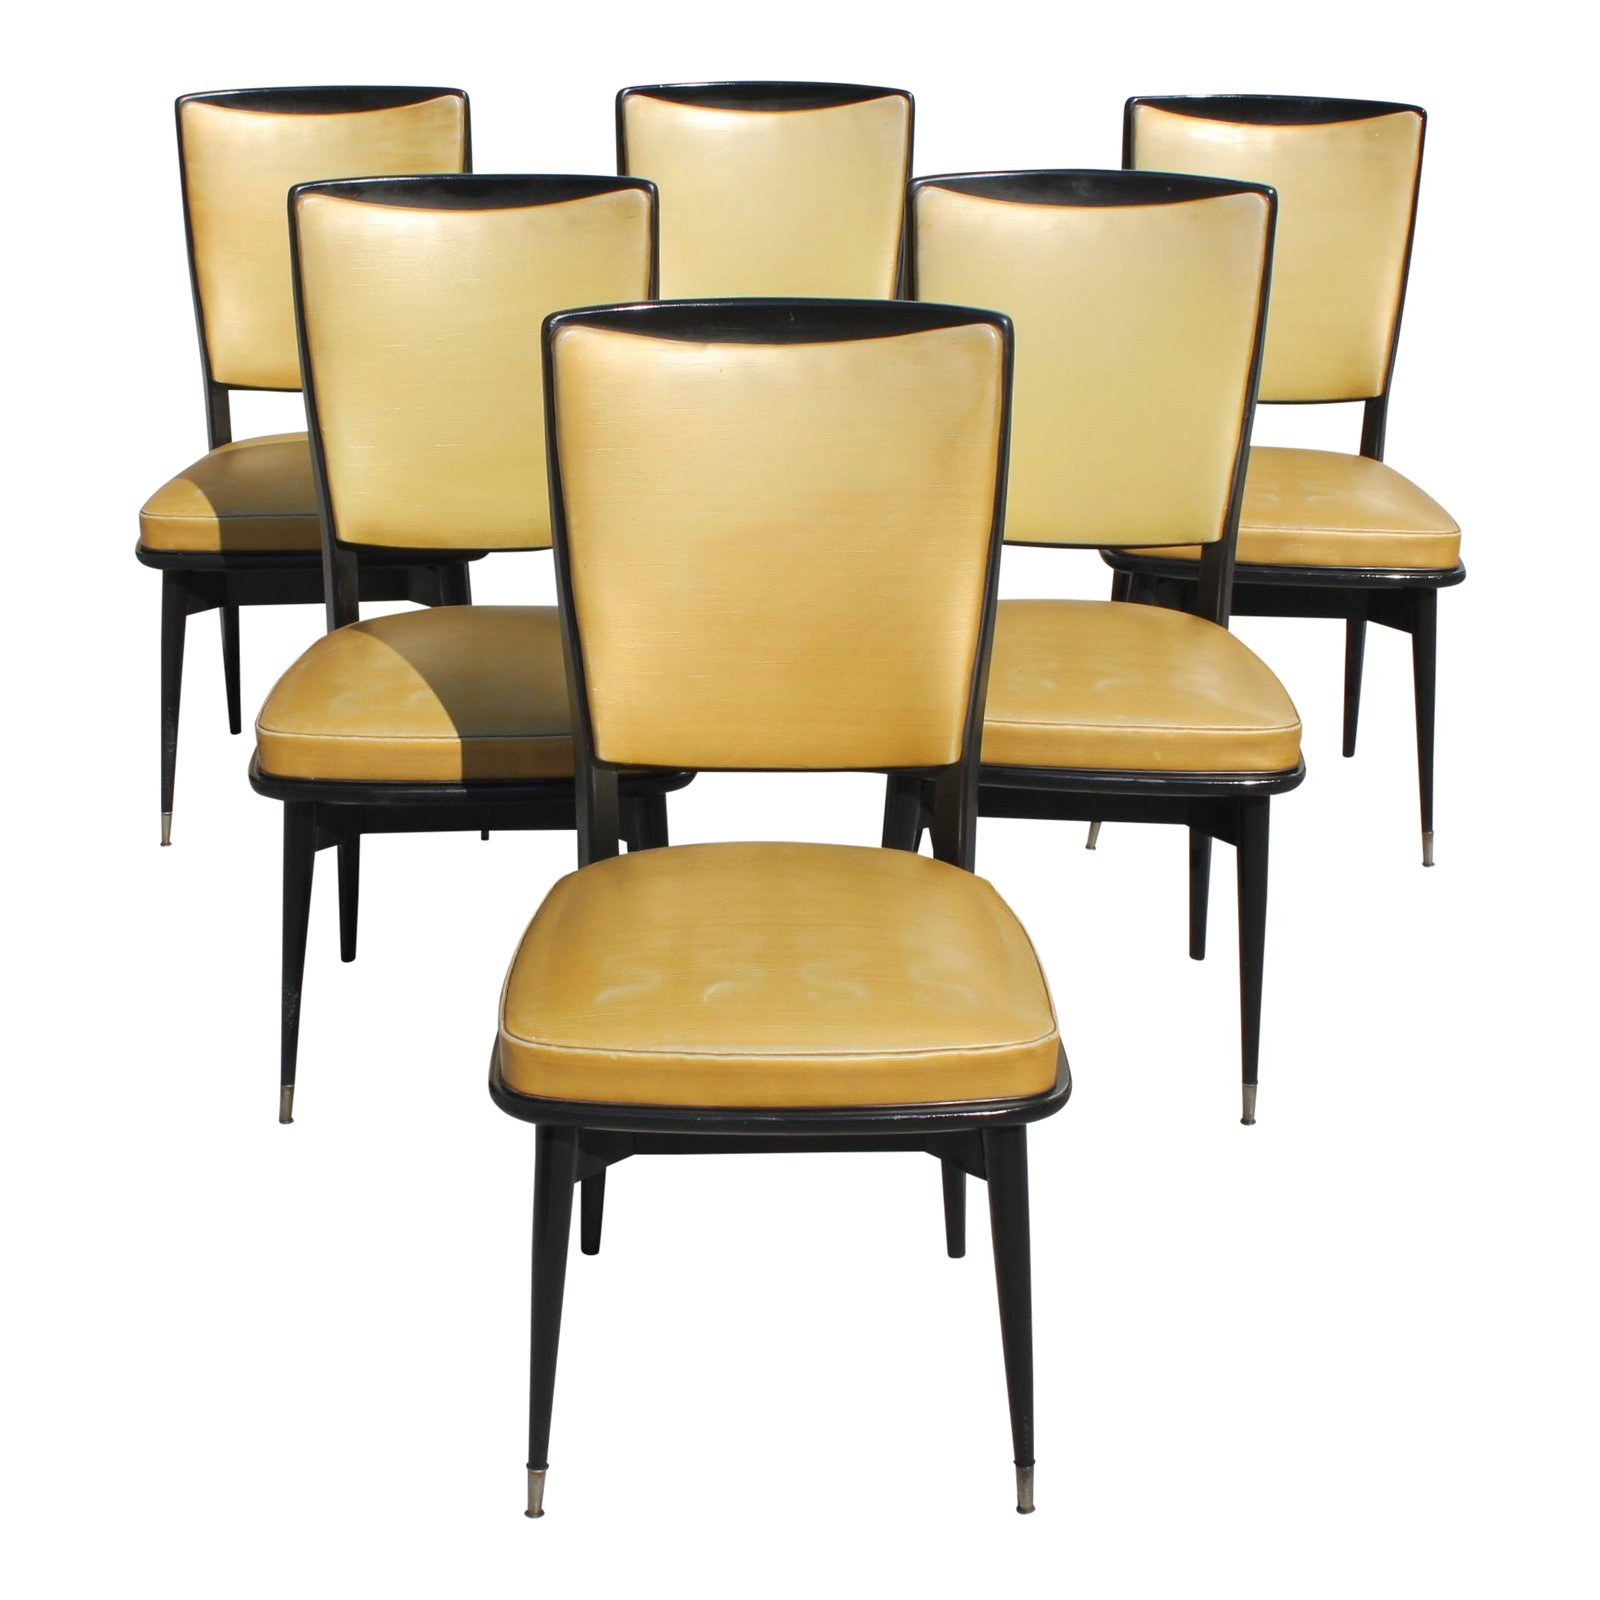 Art Deco Dining Chairs 1940s Vintage French Art Deco Solid Mahogany Dining Chairs Set Of 6